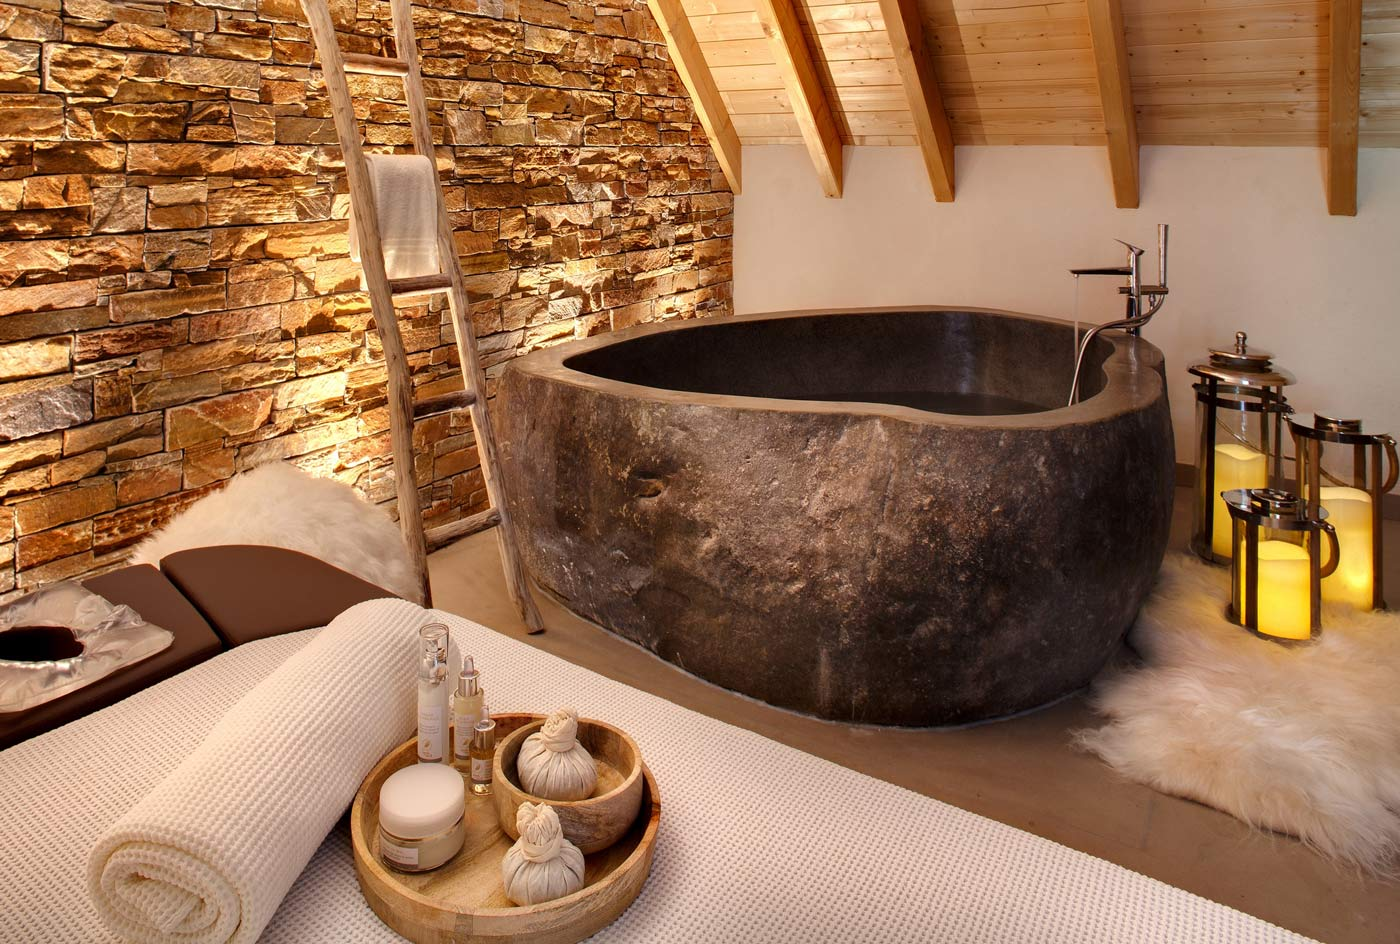 Meilleur spa d h tel en europe alsace welcome for Designhotel elsass